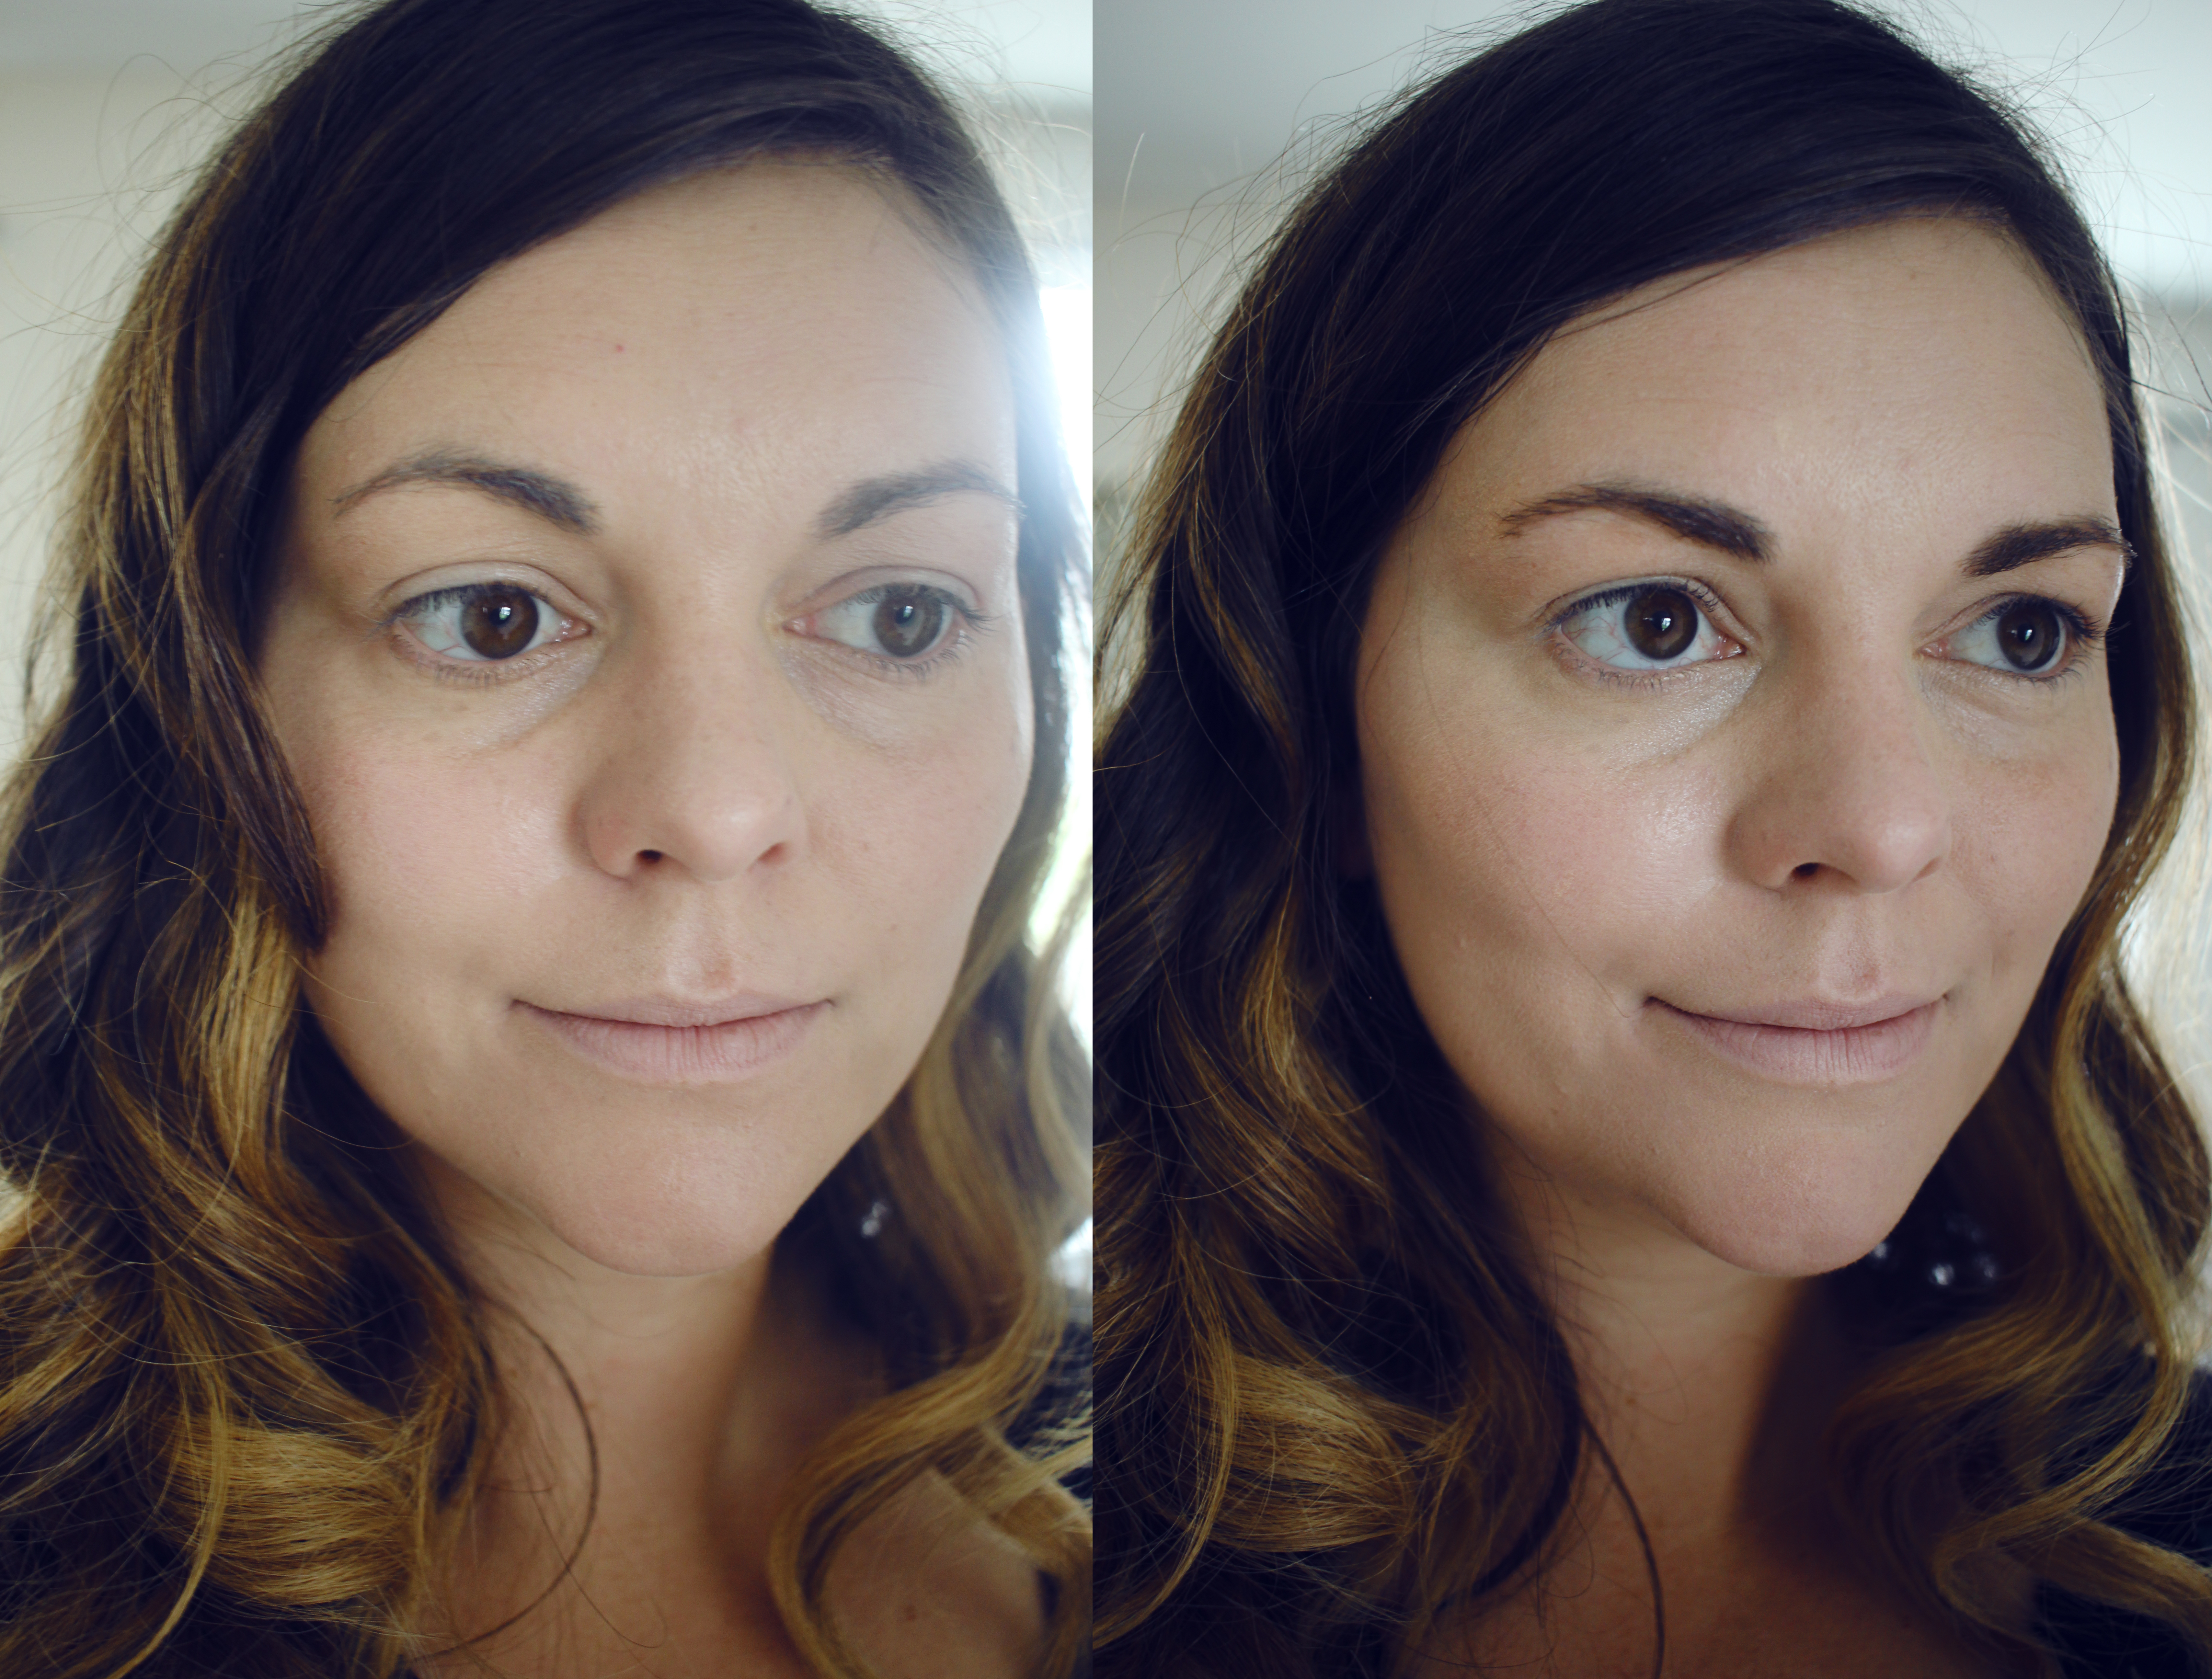 First Aid Beauty Avocado Bendy Concealer before/after